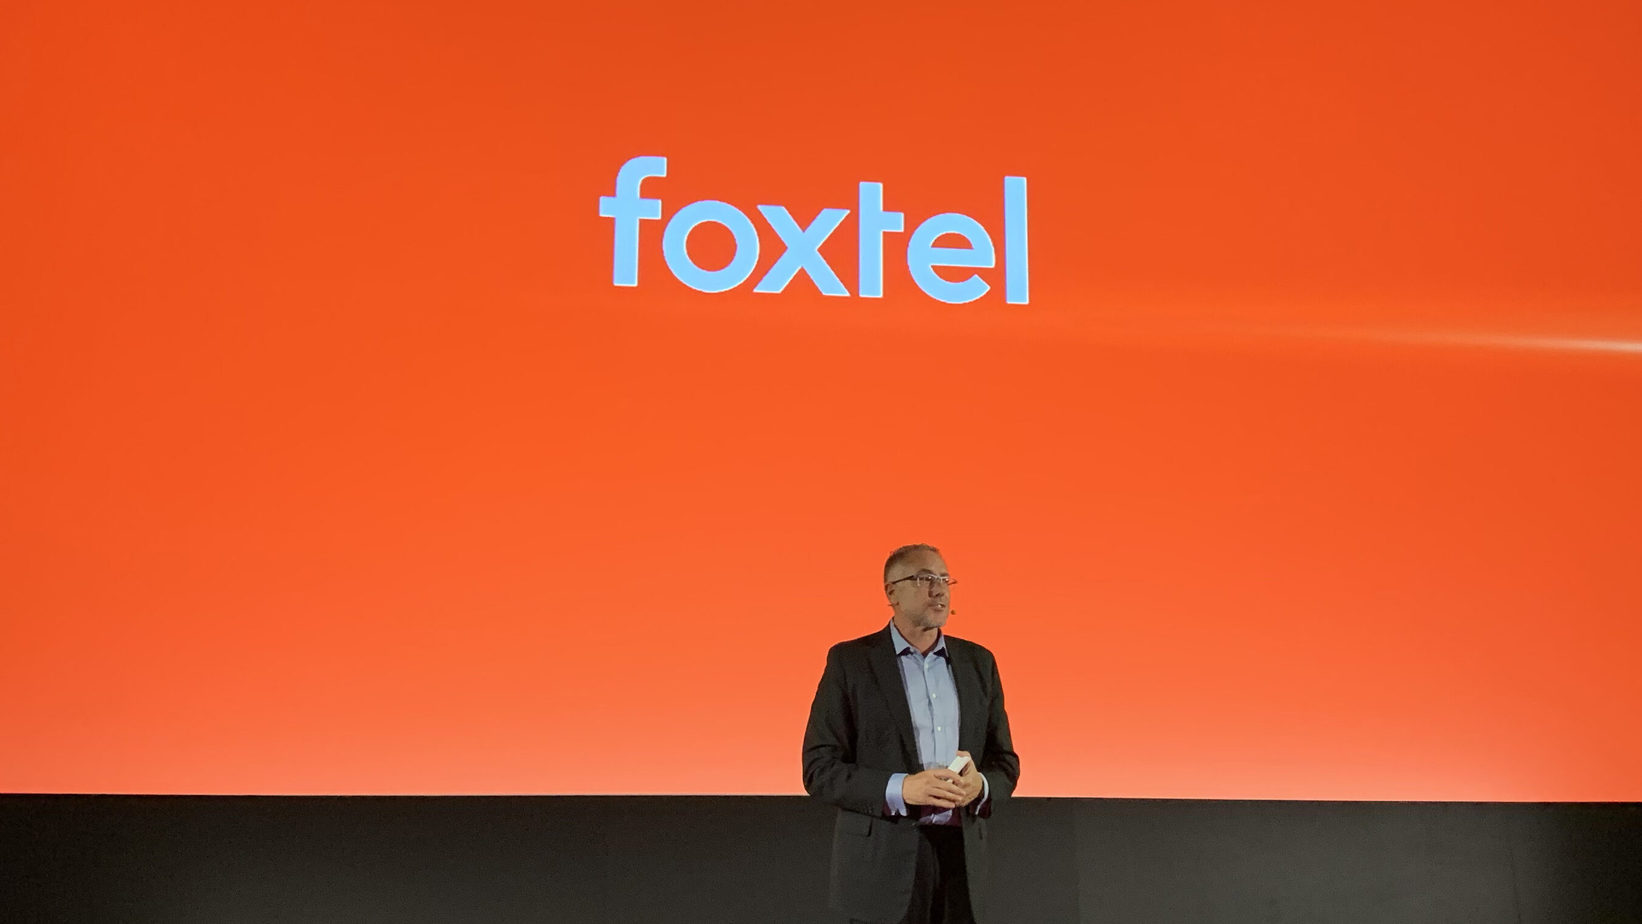 The New Foxtel experience proves popular - 19,000 users have